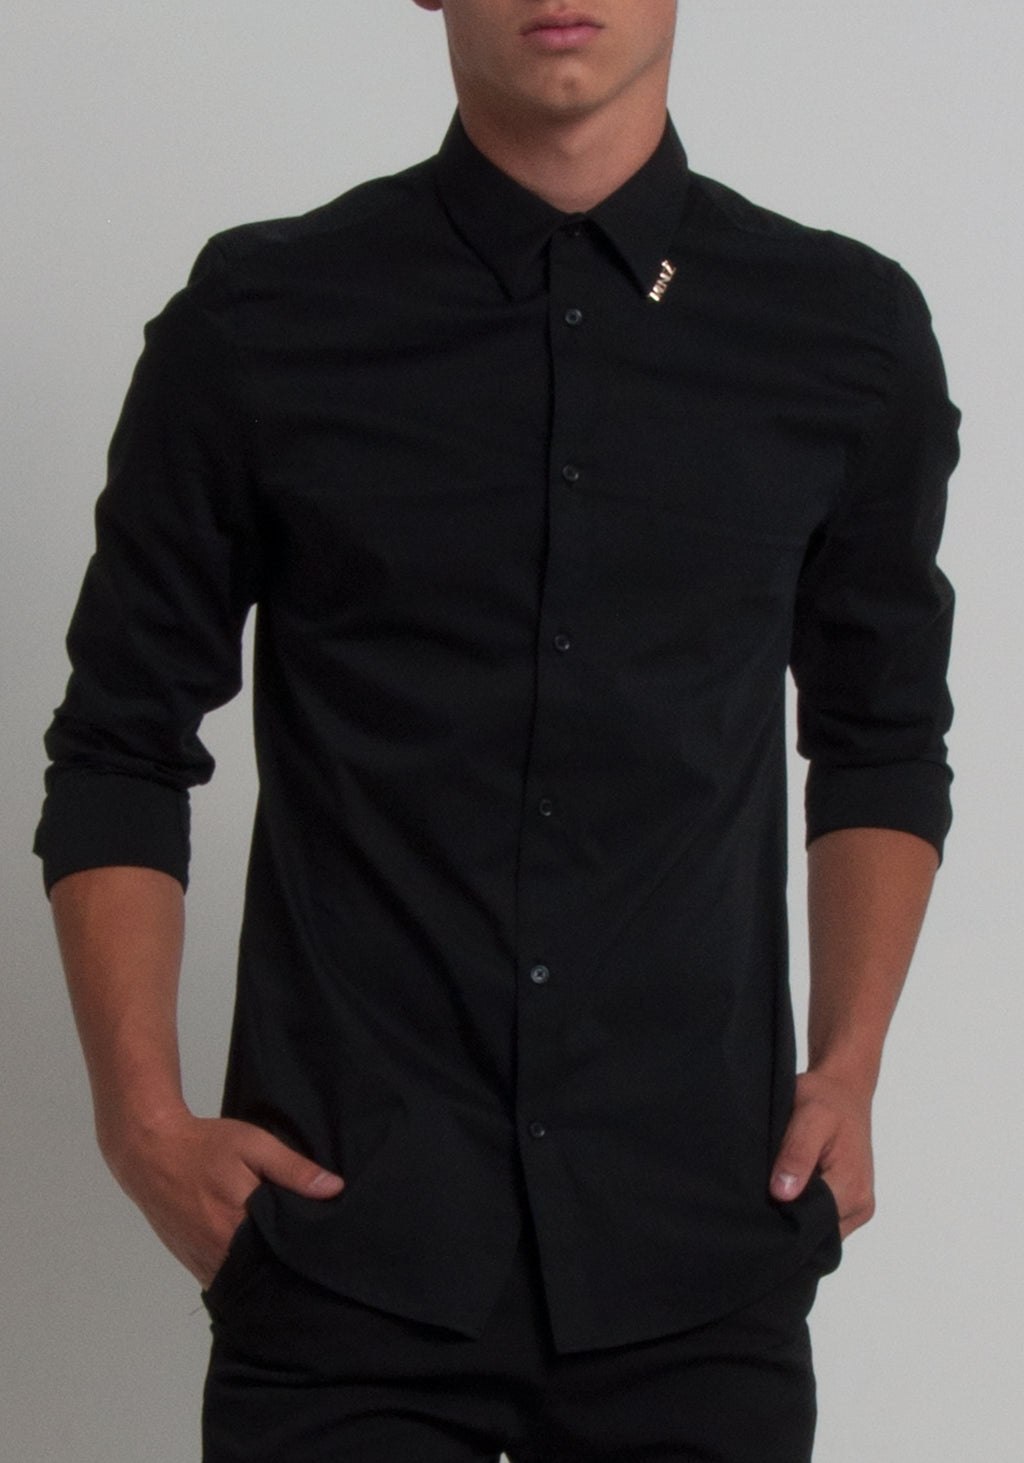 "MENEZ™ MEN""S BUTTON UP SHIRT - MENEZ"